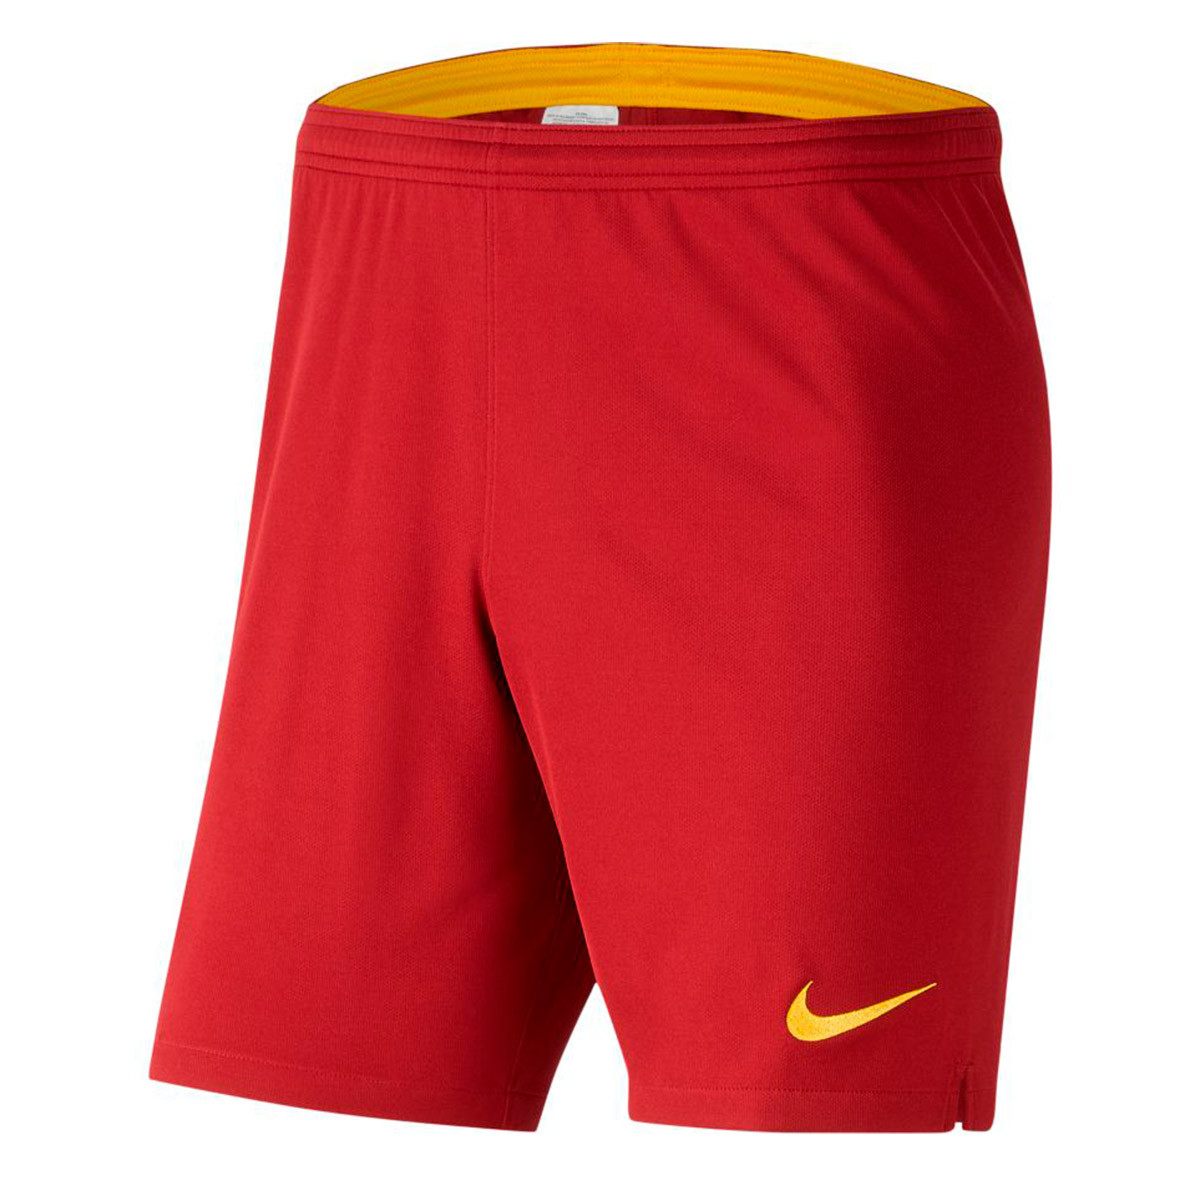 raíz Antemano cerebro  Short Nike AS Roma Breathe Stadium Primera/Segunda Equipación 2019-2020  Team crimson-University gold - Tienda de fútbol Fútbol Emotion